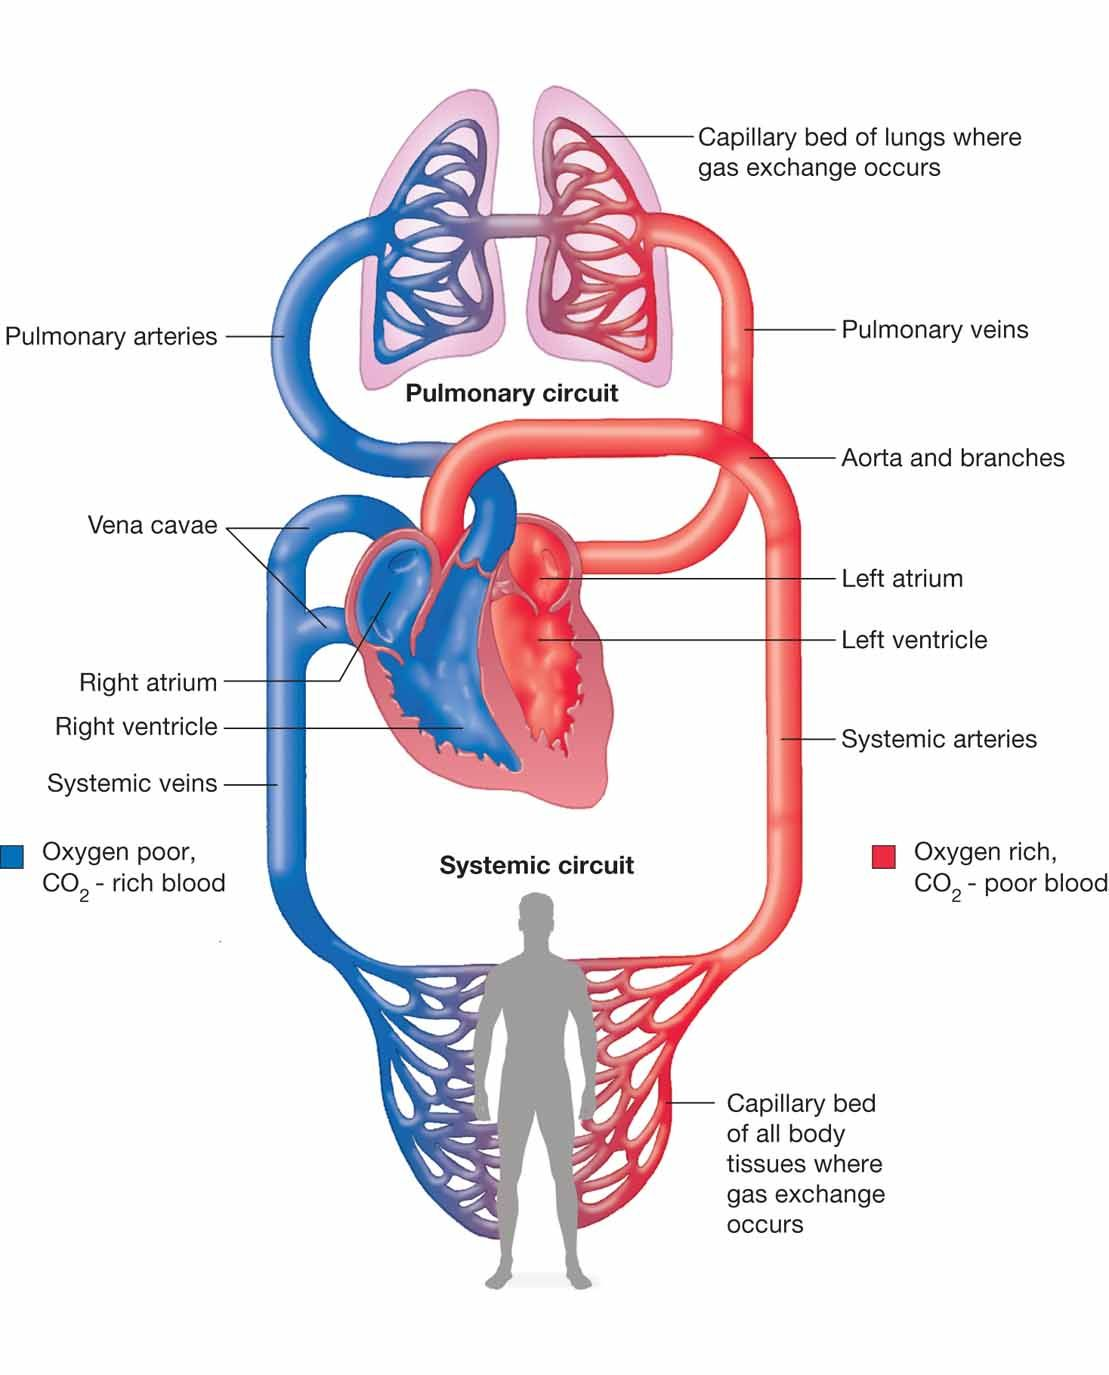 Human Circulatory System Diagram Photos Systemic And Pulmonary Circulation 2